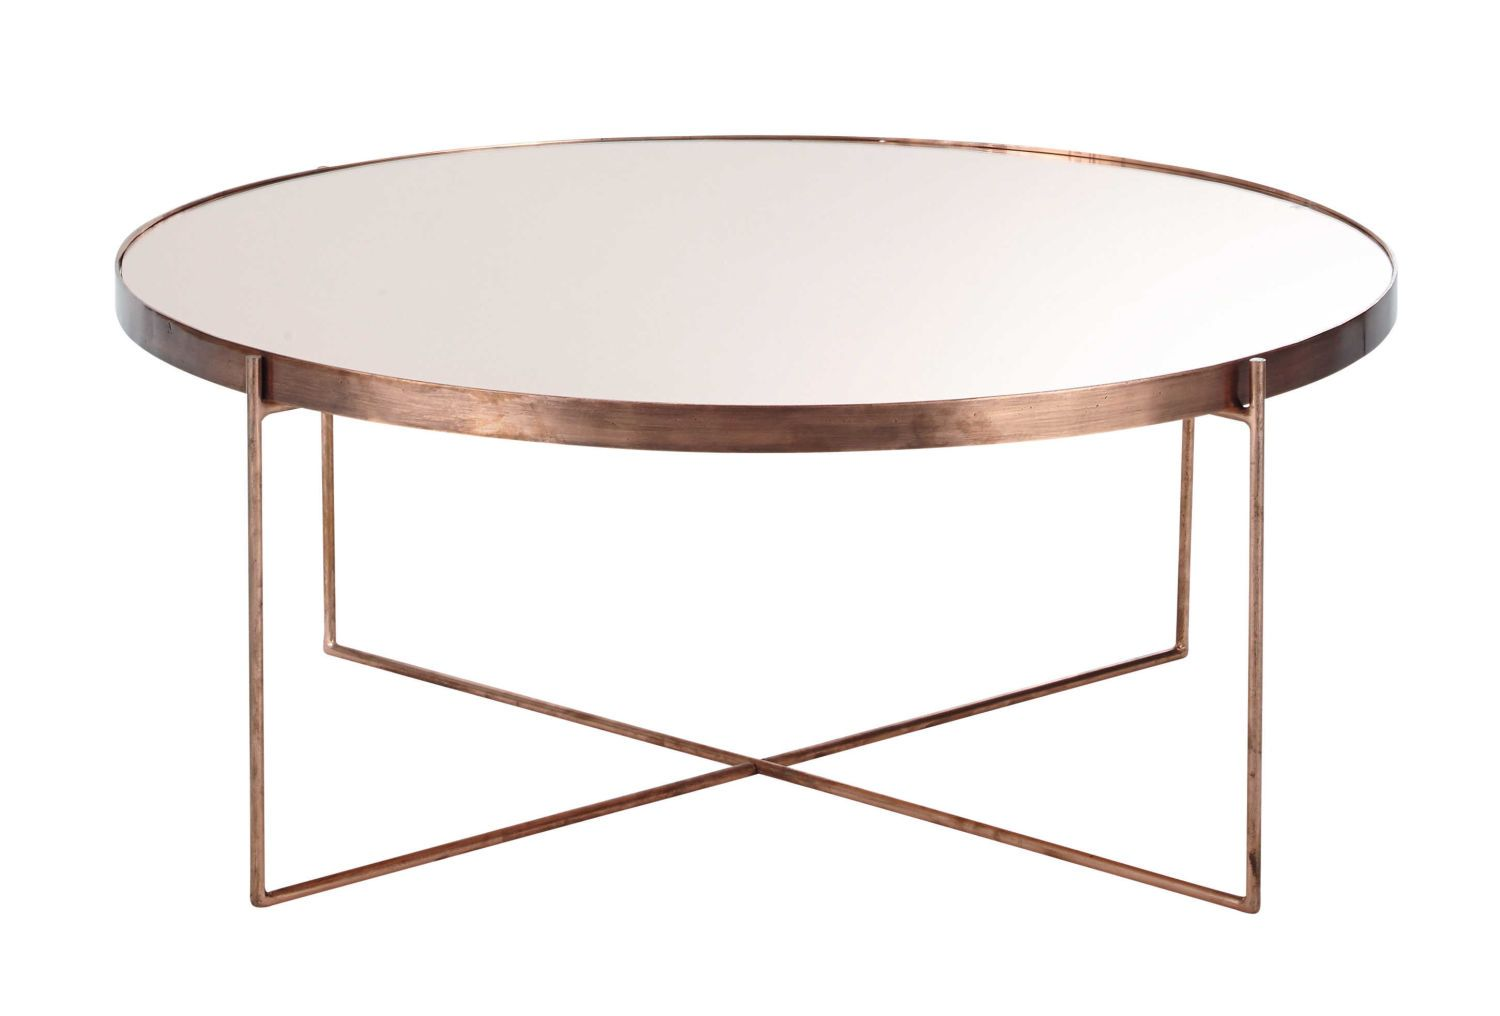 Copper Plated Metal Mirror Round Coffee Table Maisons Du Monde Coffee Table Round Coffee Table Table [ 1016 x 1500 Pixel ]